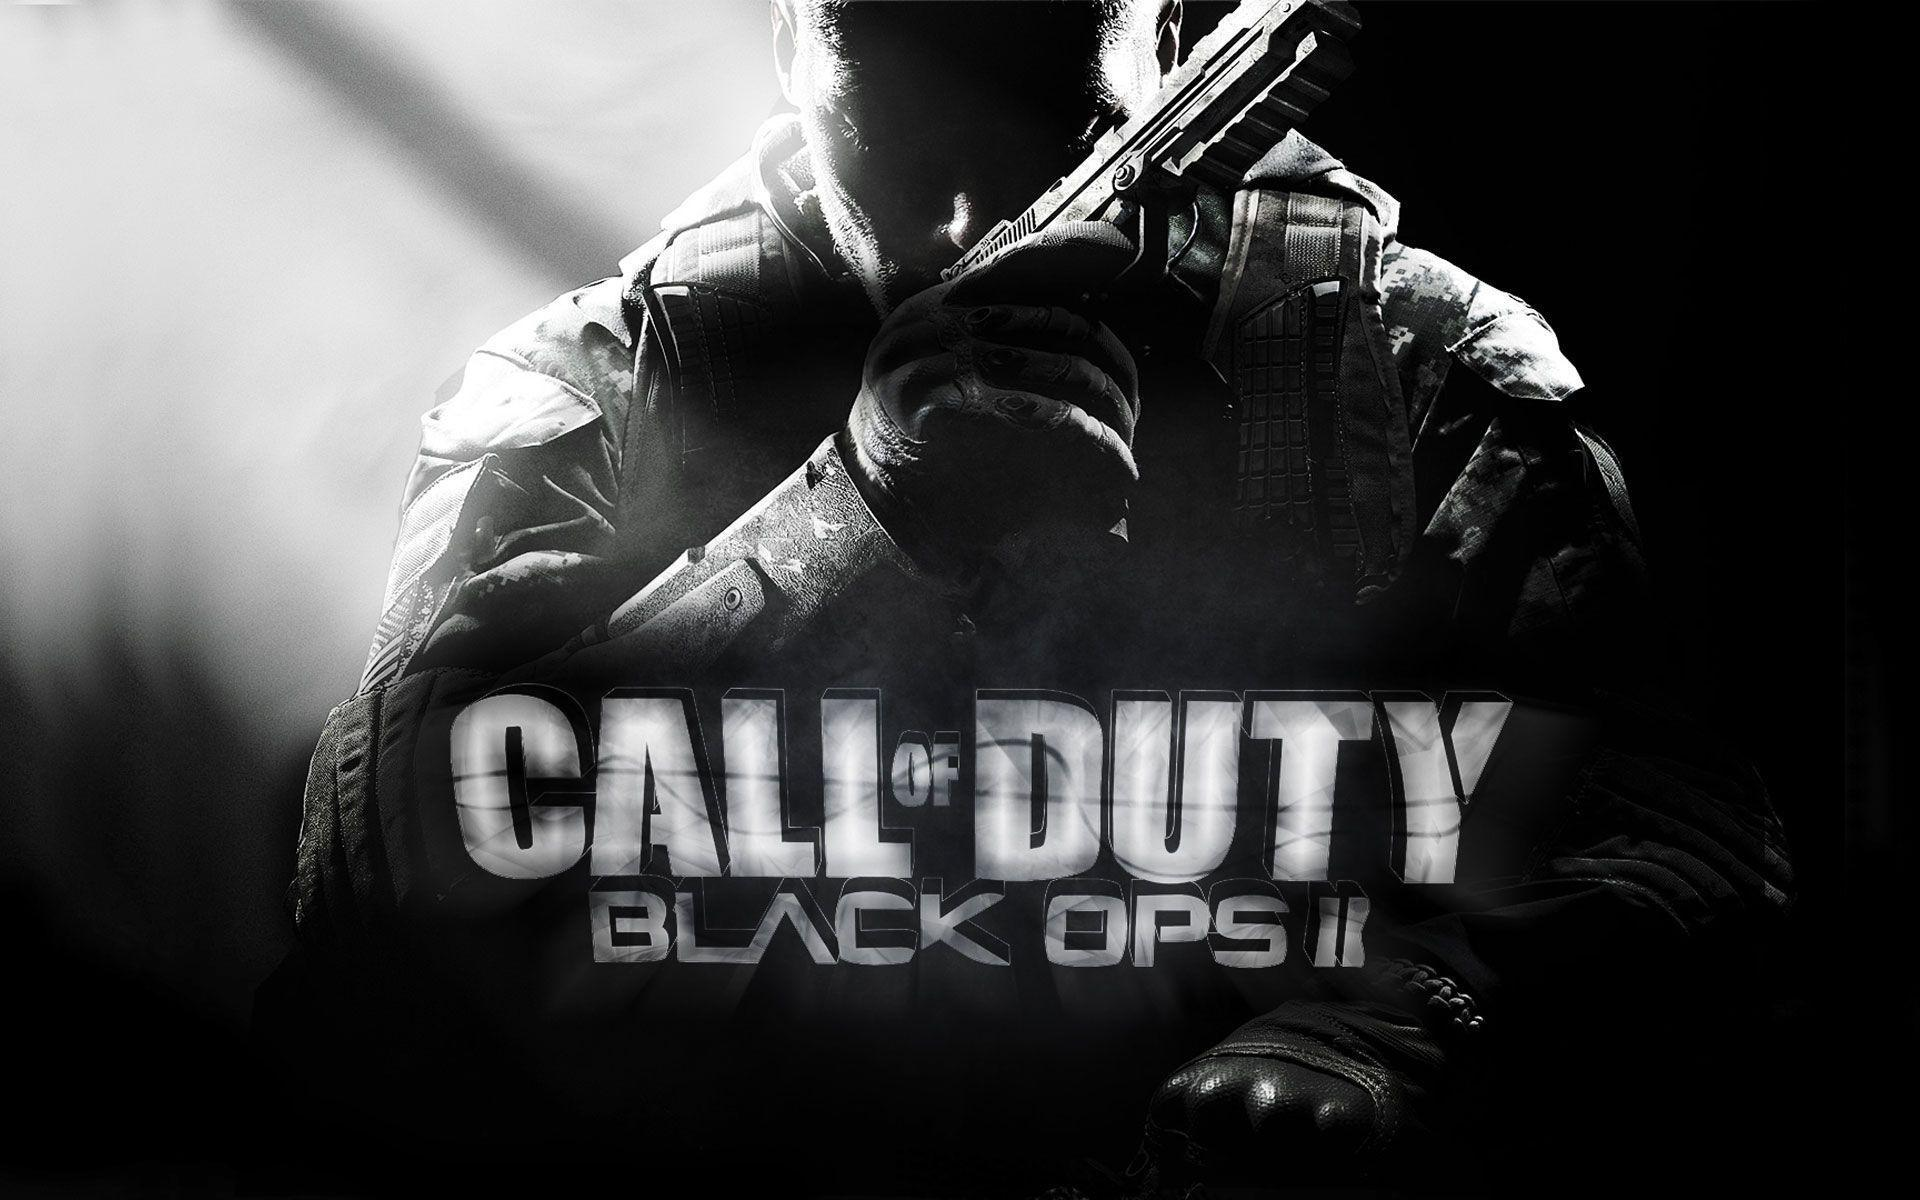 call of duty black ops 2 wallpapers 3C 1